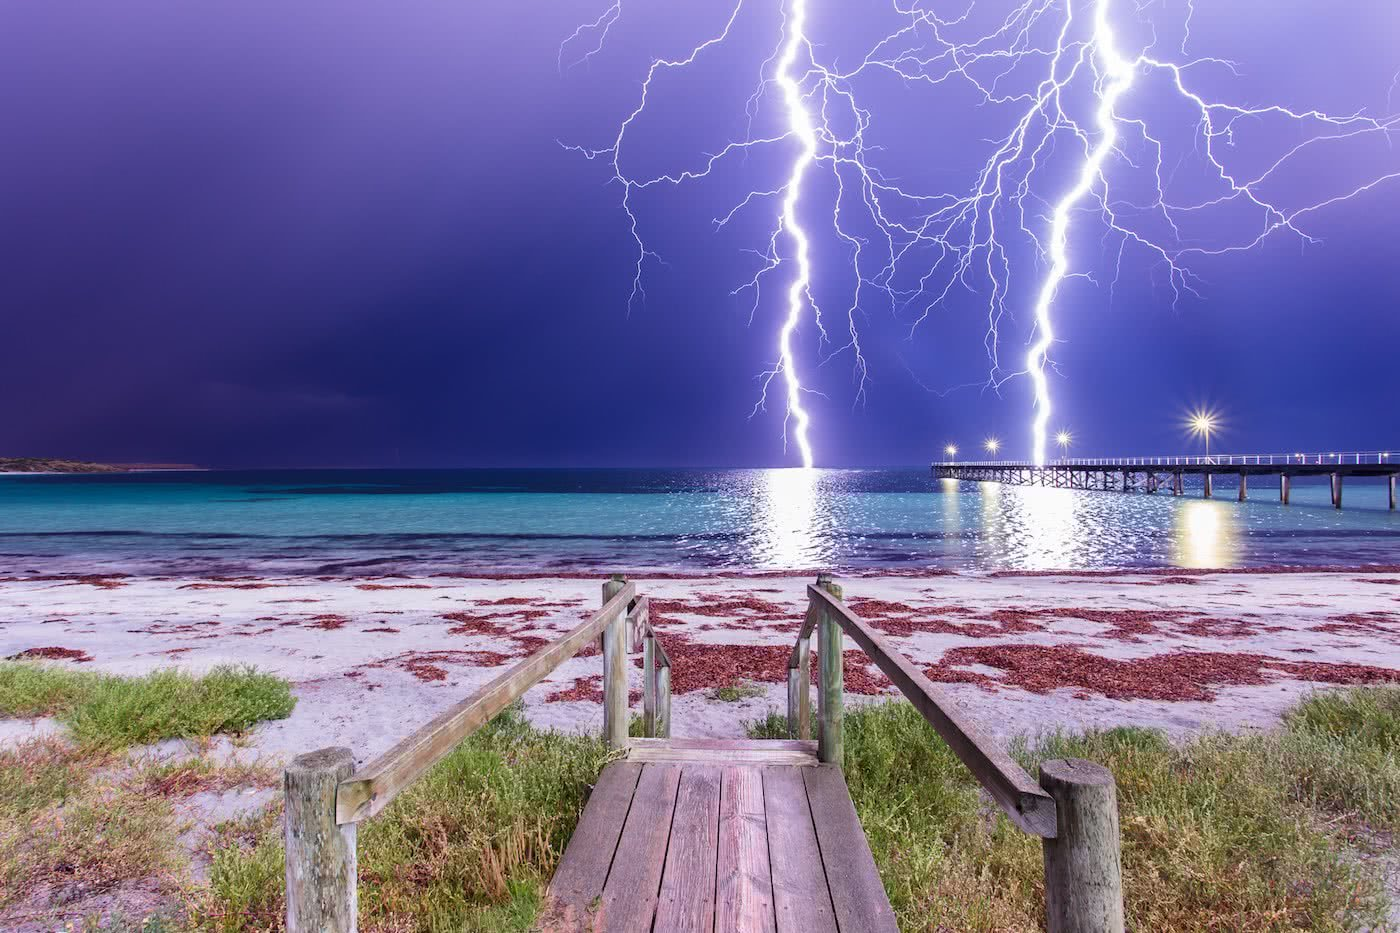 A Hiker's Guide To Lightning Safety, Xavier Anderson, photo Luke Gardner, pt neill comp, boardwalk, storm, ocean, beach, pier, dunes, hero